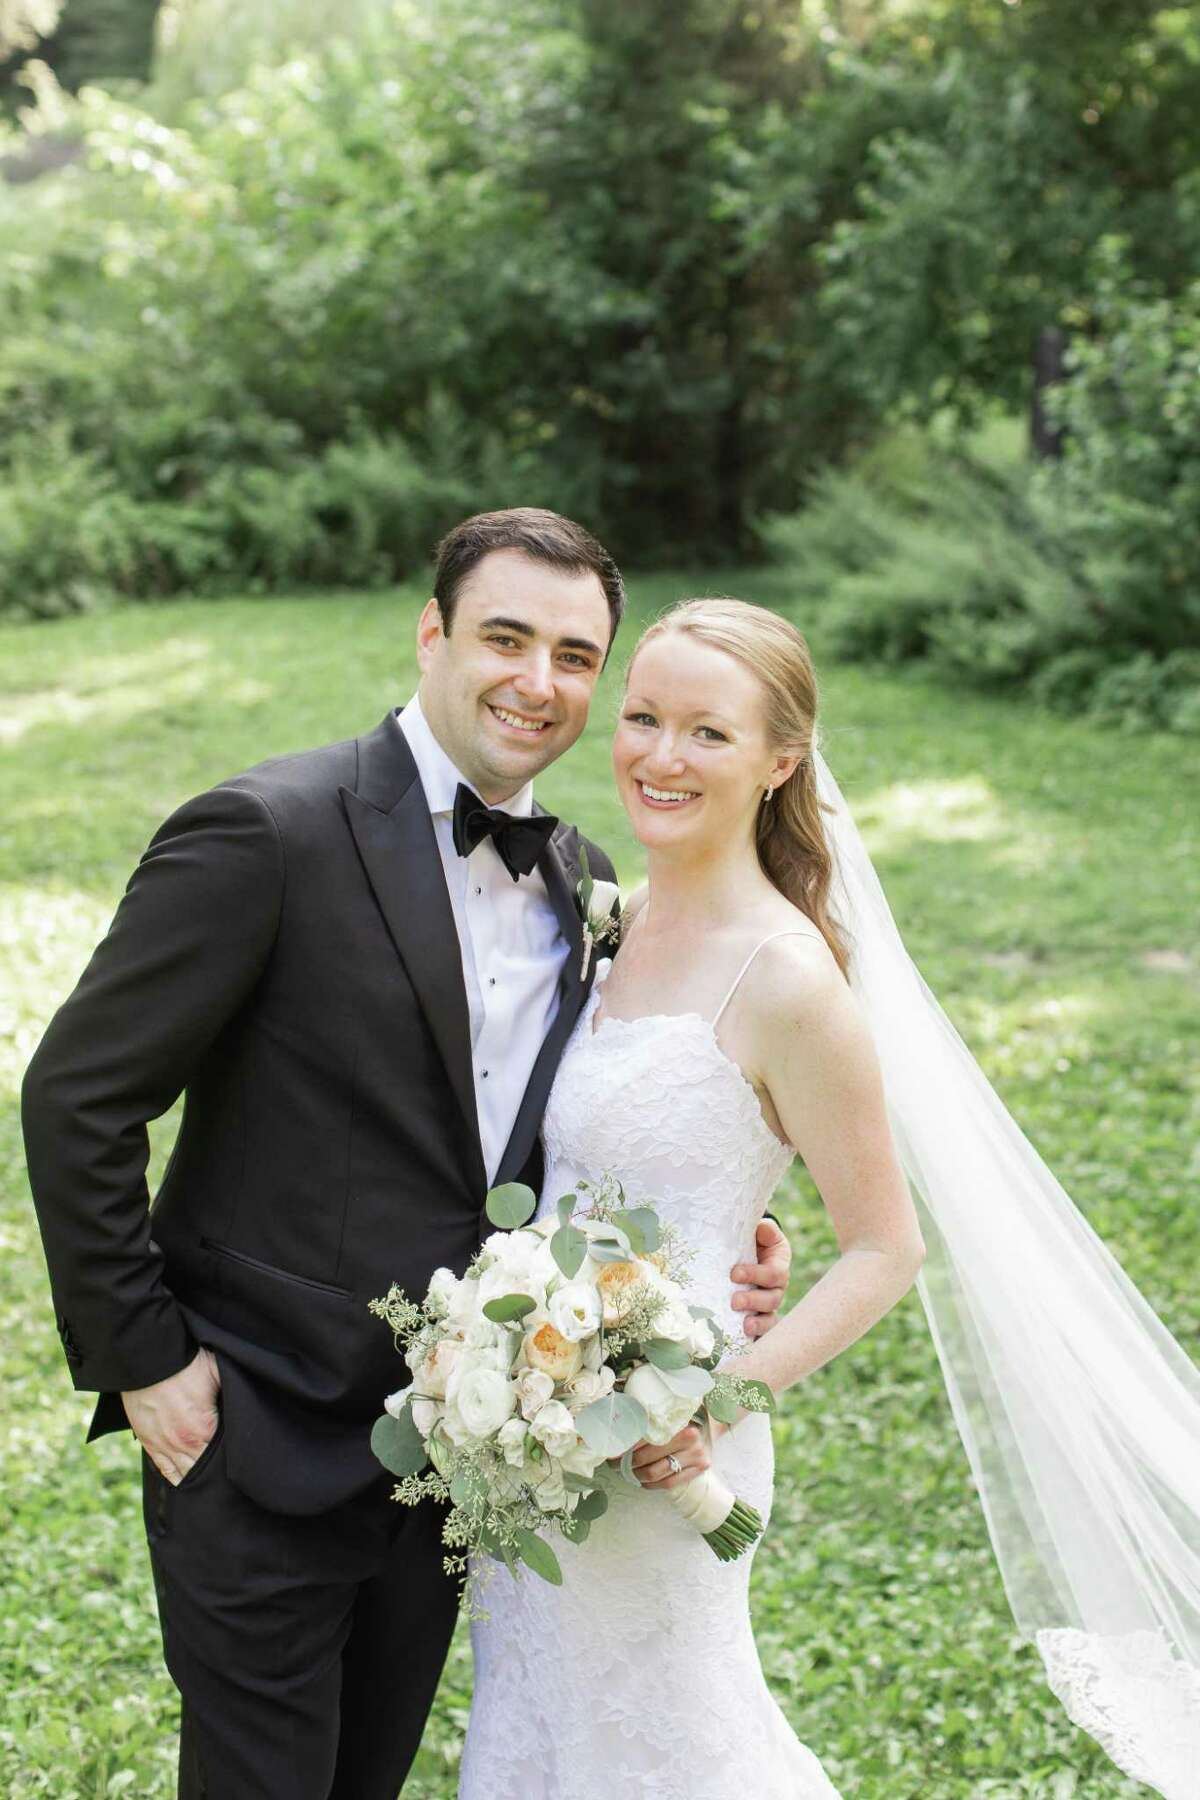 Caitlin Patricia Coleman and David Jay Hasson.